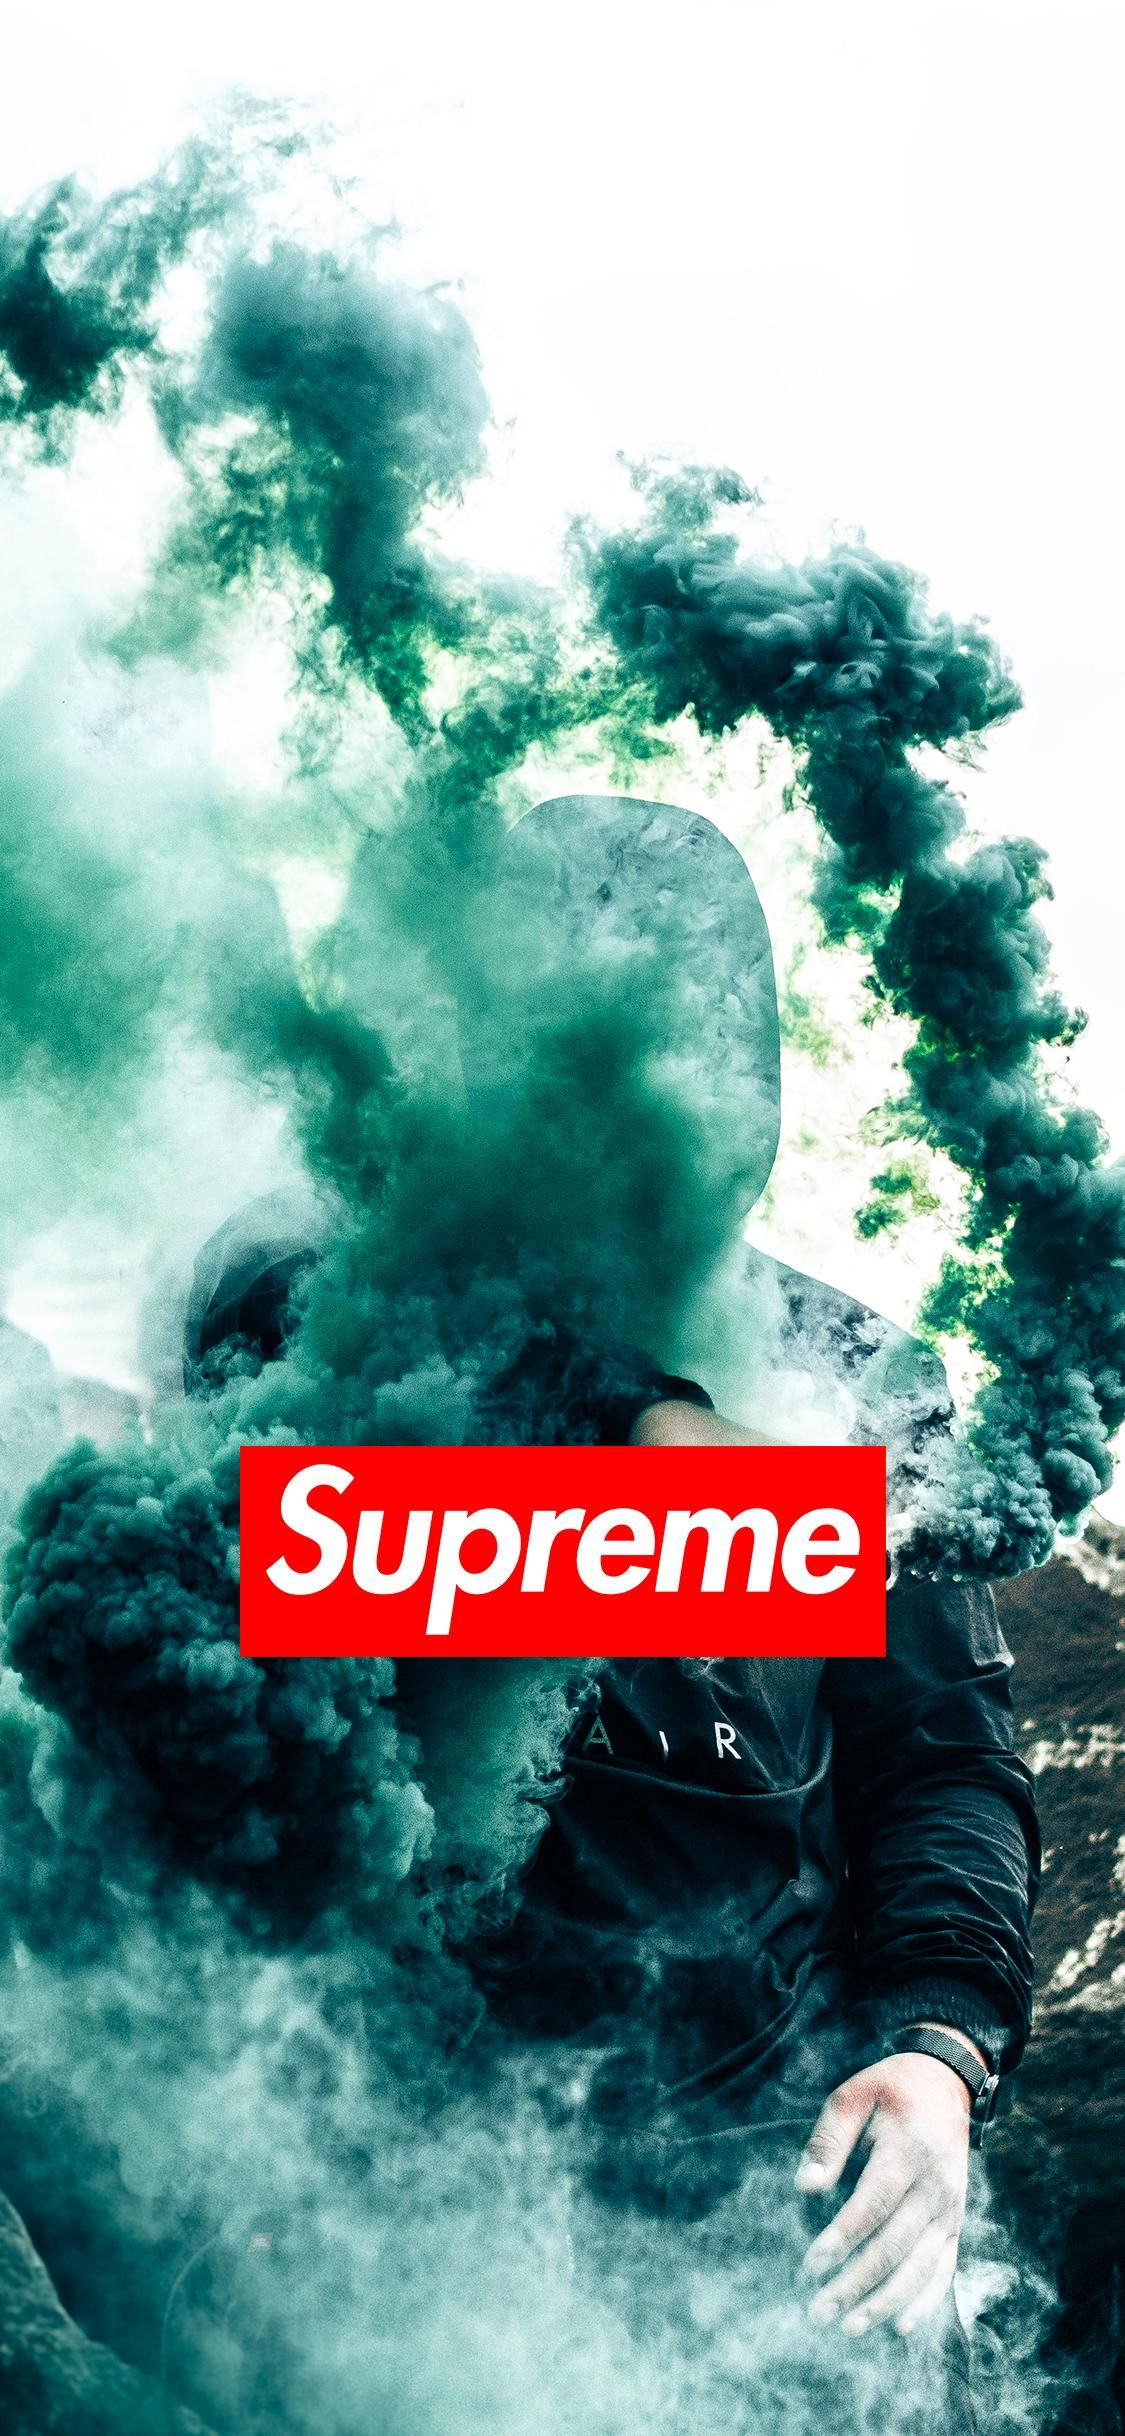 Supreme Wallpaper For iPhone & Android iPhone Wallpapers